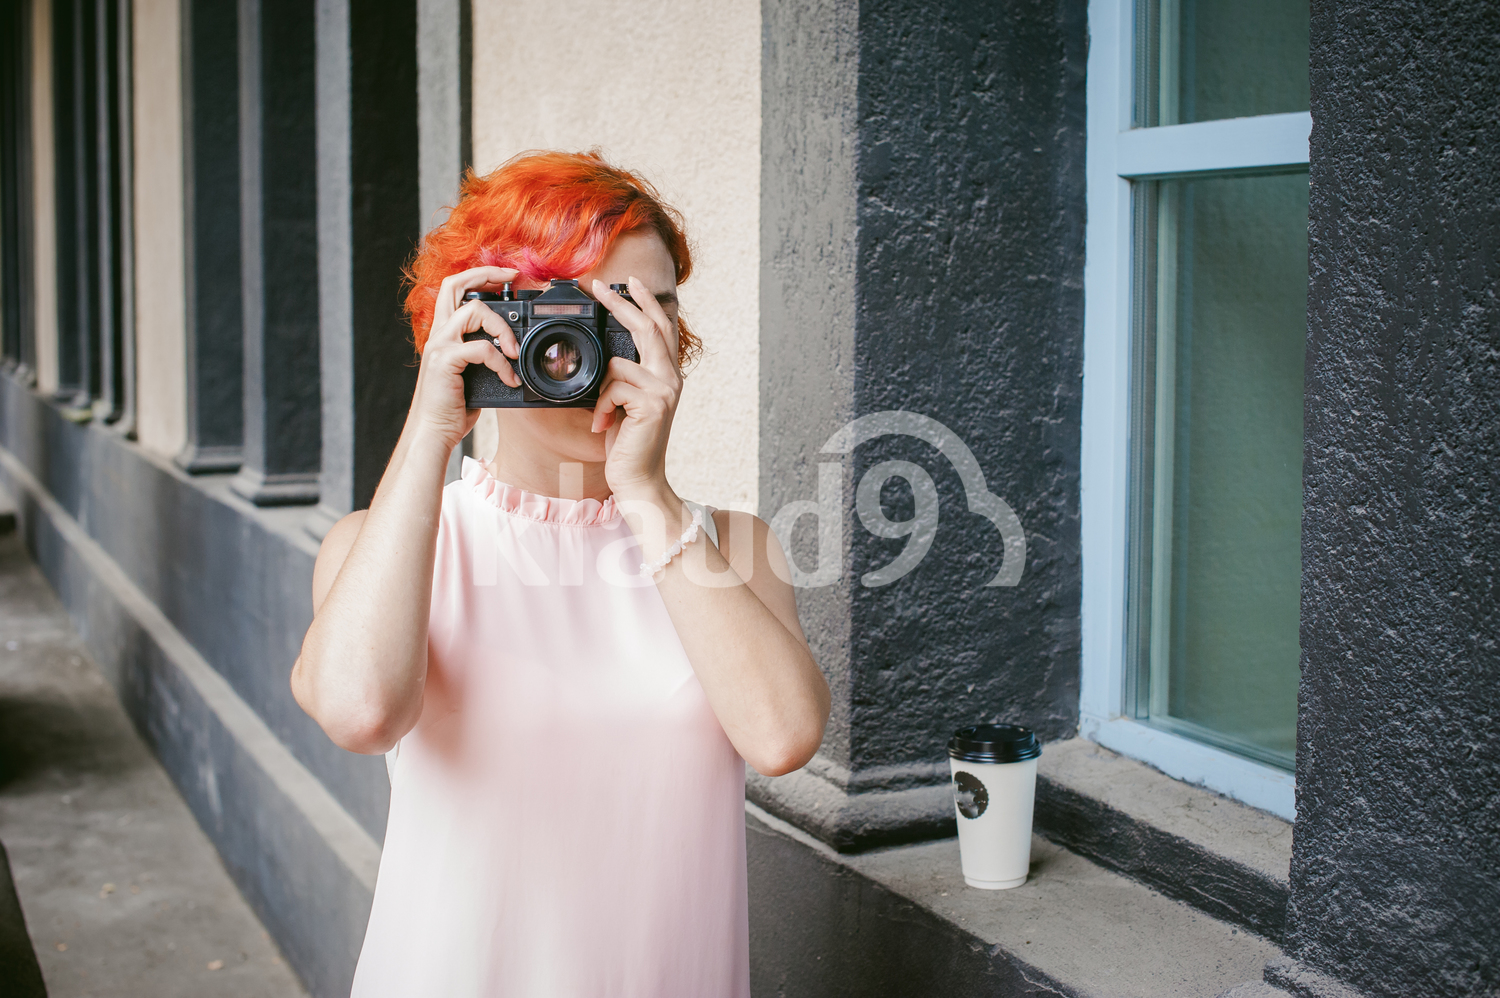 Red head with a film camera